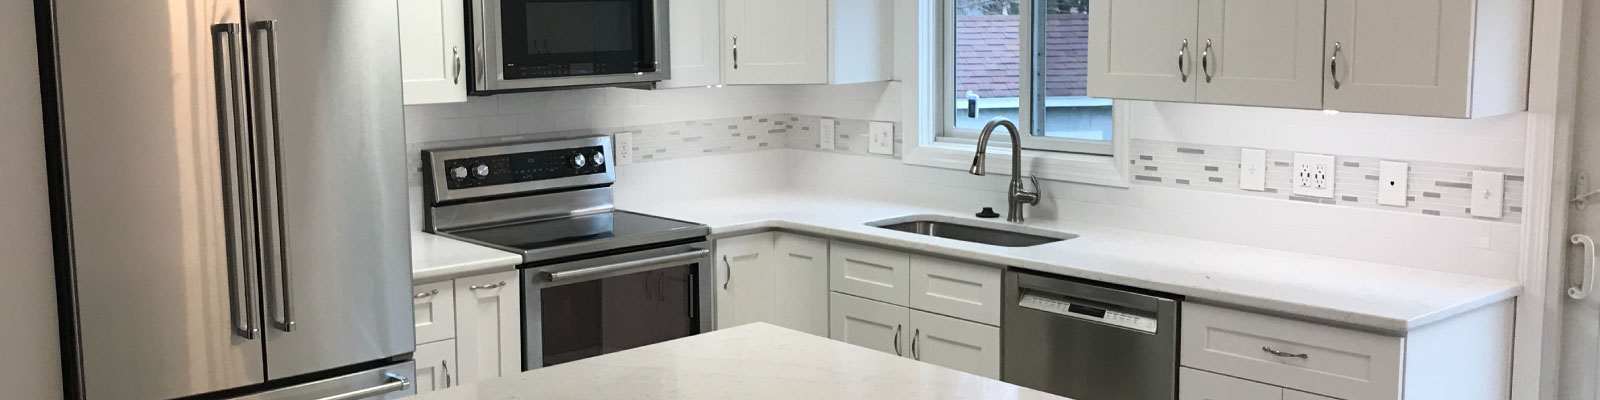 Omaha And Lincoln, Nebraska Kitchen Remodeling And Bathroom Remodeling